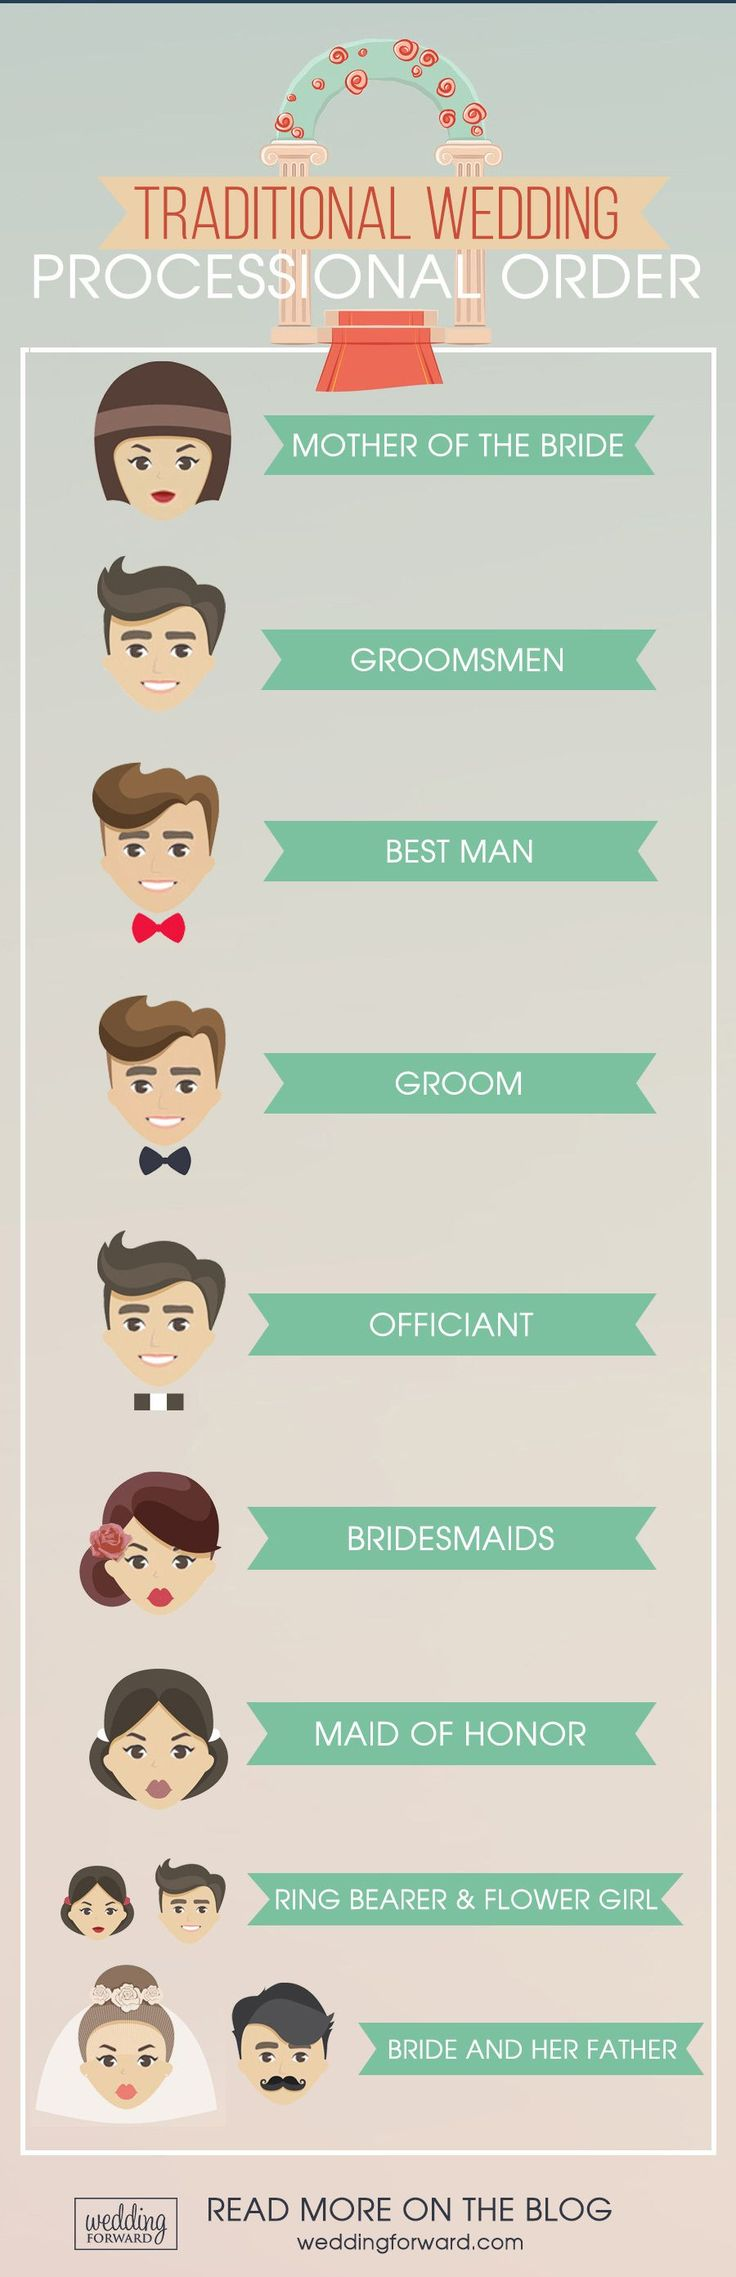 traditional wedding processional order